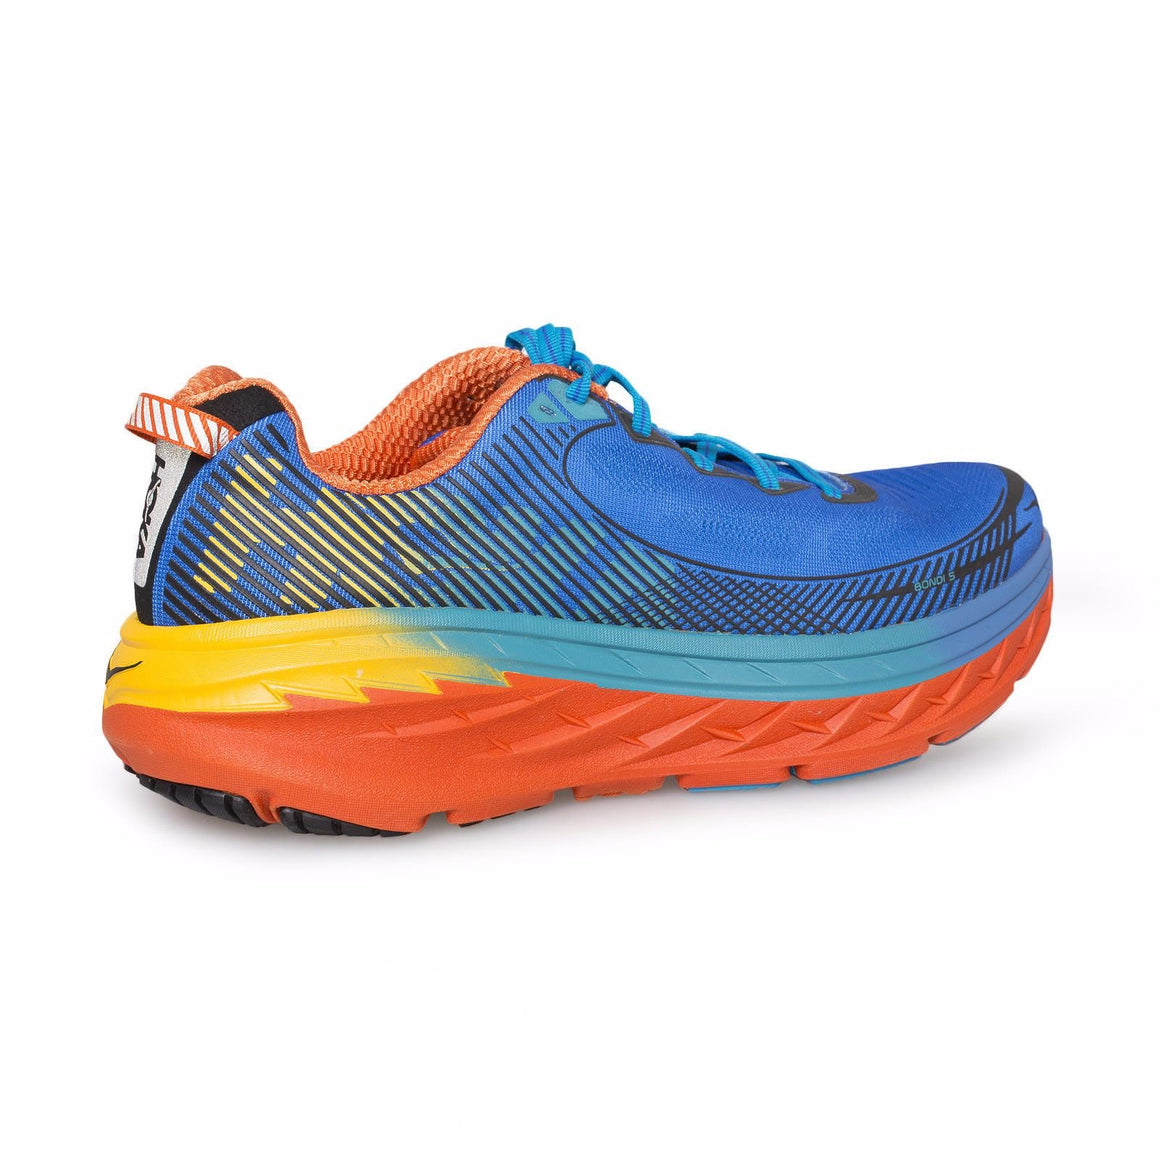 Hoka Bondi 5 Blue/Red Orange/Gold Fusion Running Shoes